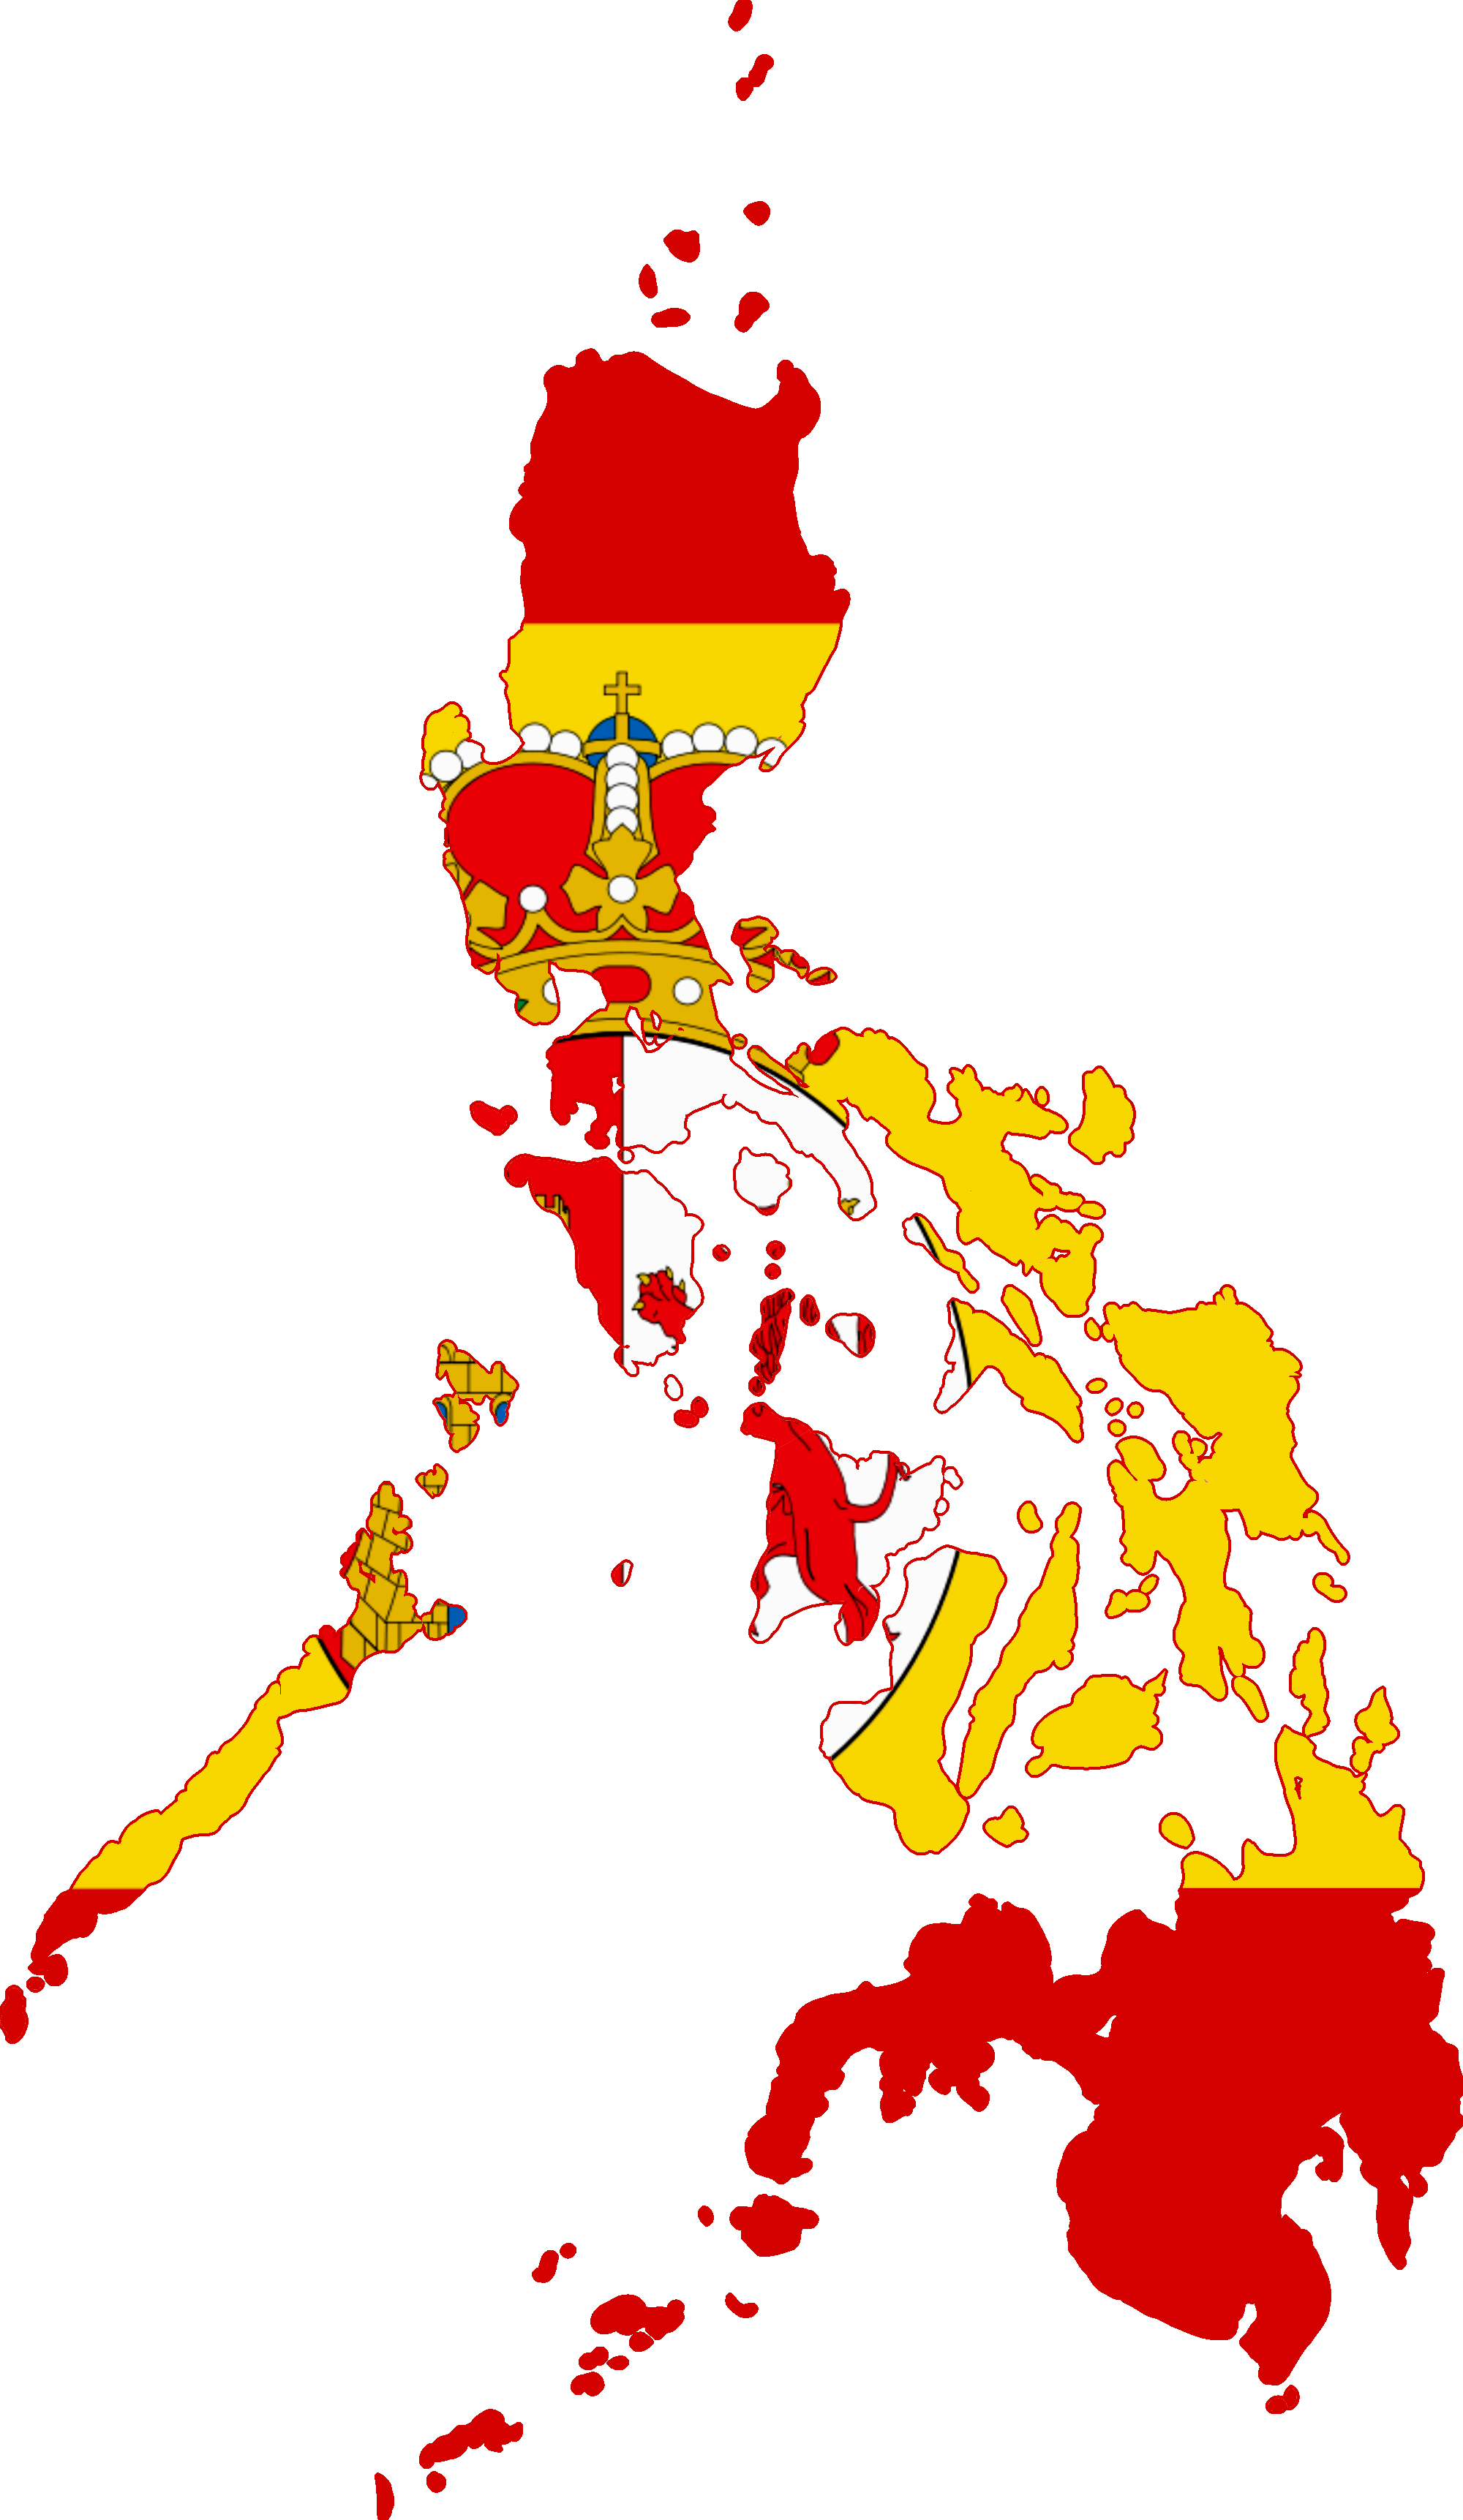 Spain Map Flag.Pin By C Friedrich On Spanish Culture And Heritage In The